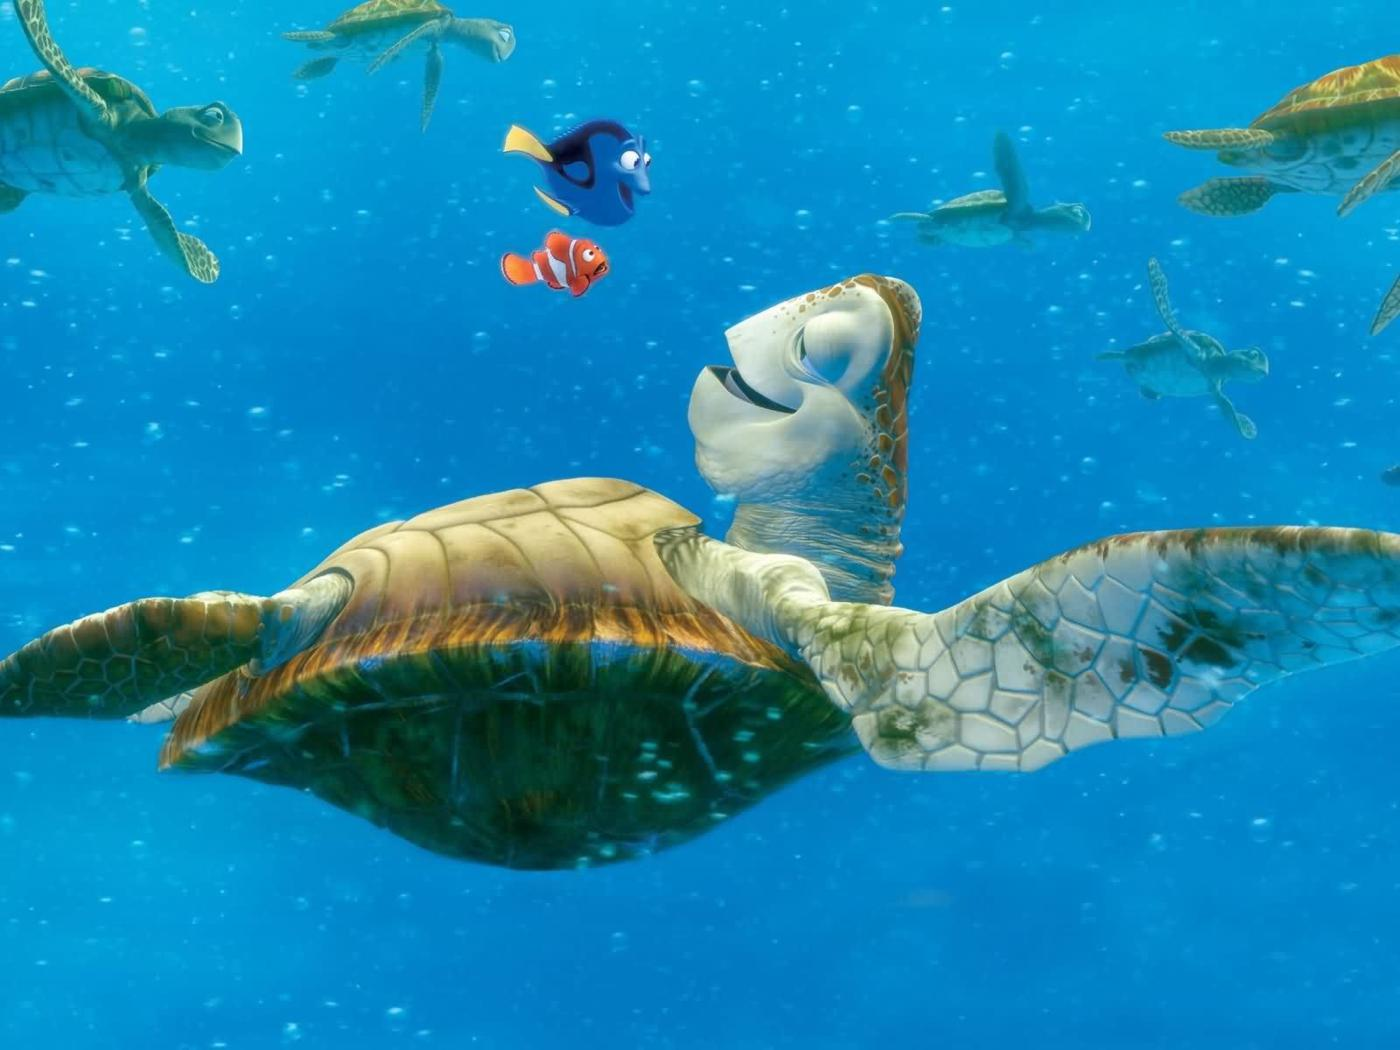 Sea Turtle Desktop Wallpapers Image & Pictures